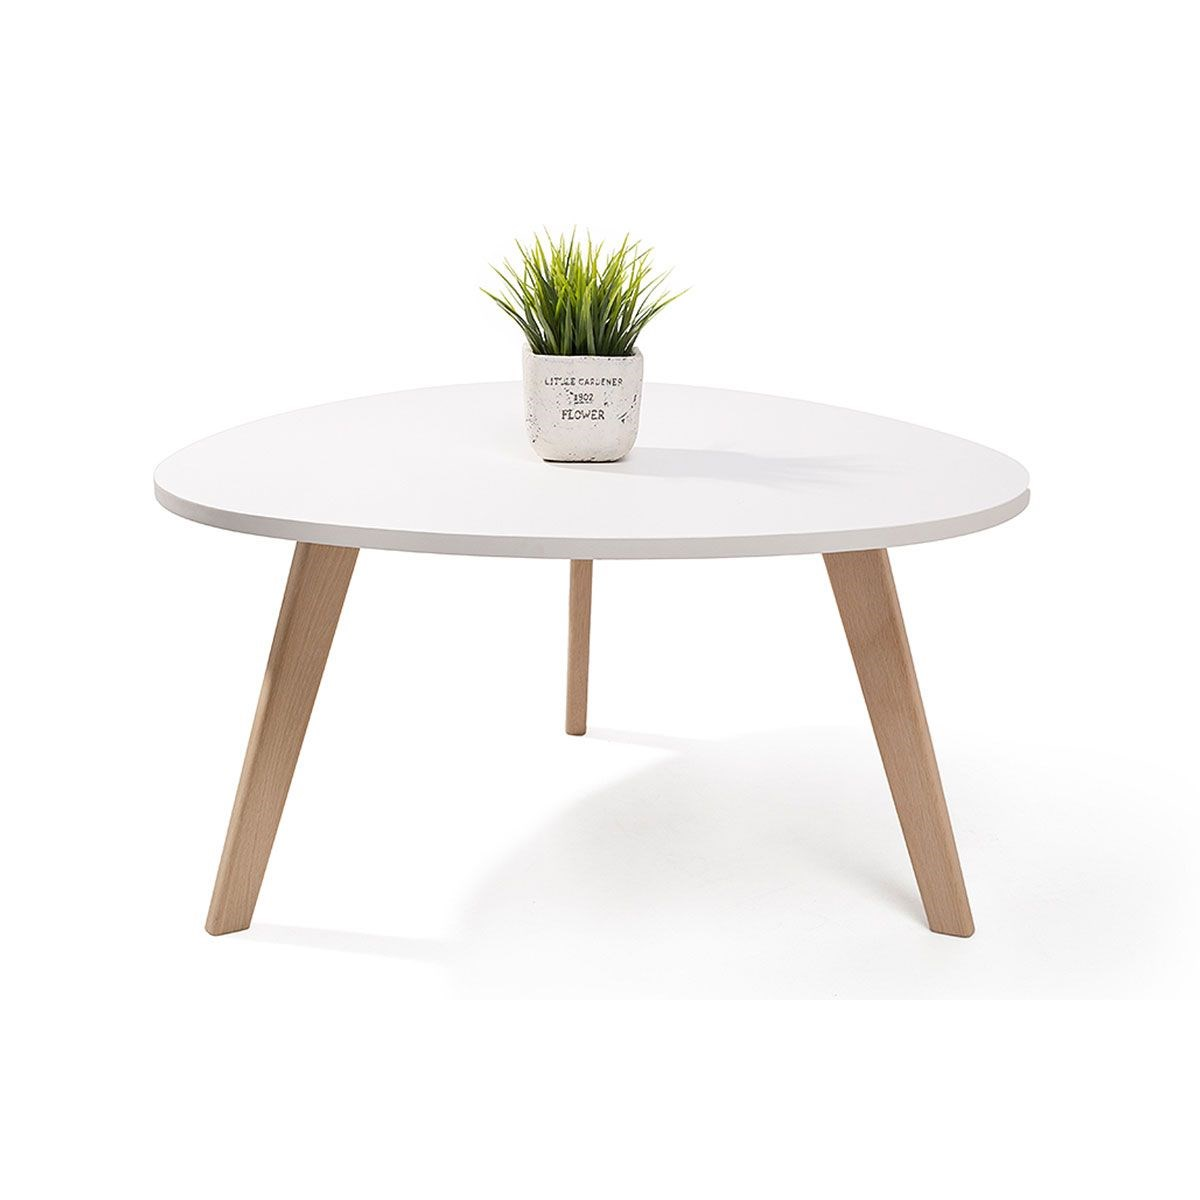 Alta table basse scandinave aspect galet pieds en bois for Pied table basse scandinave